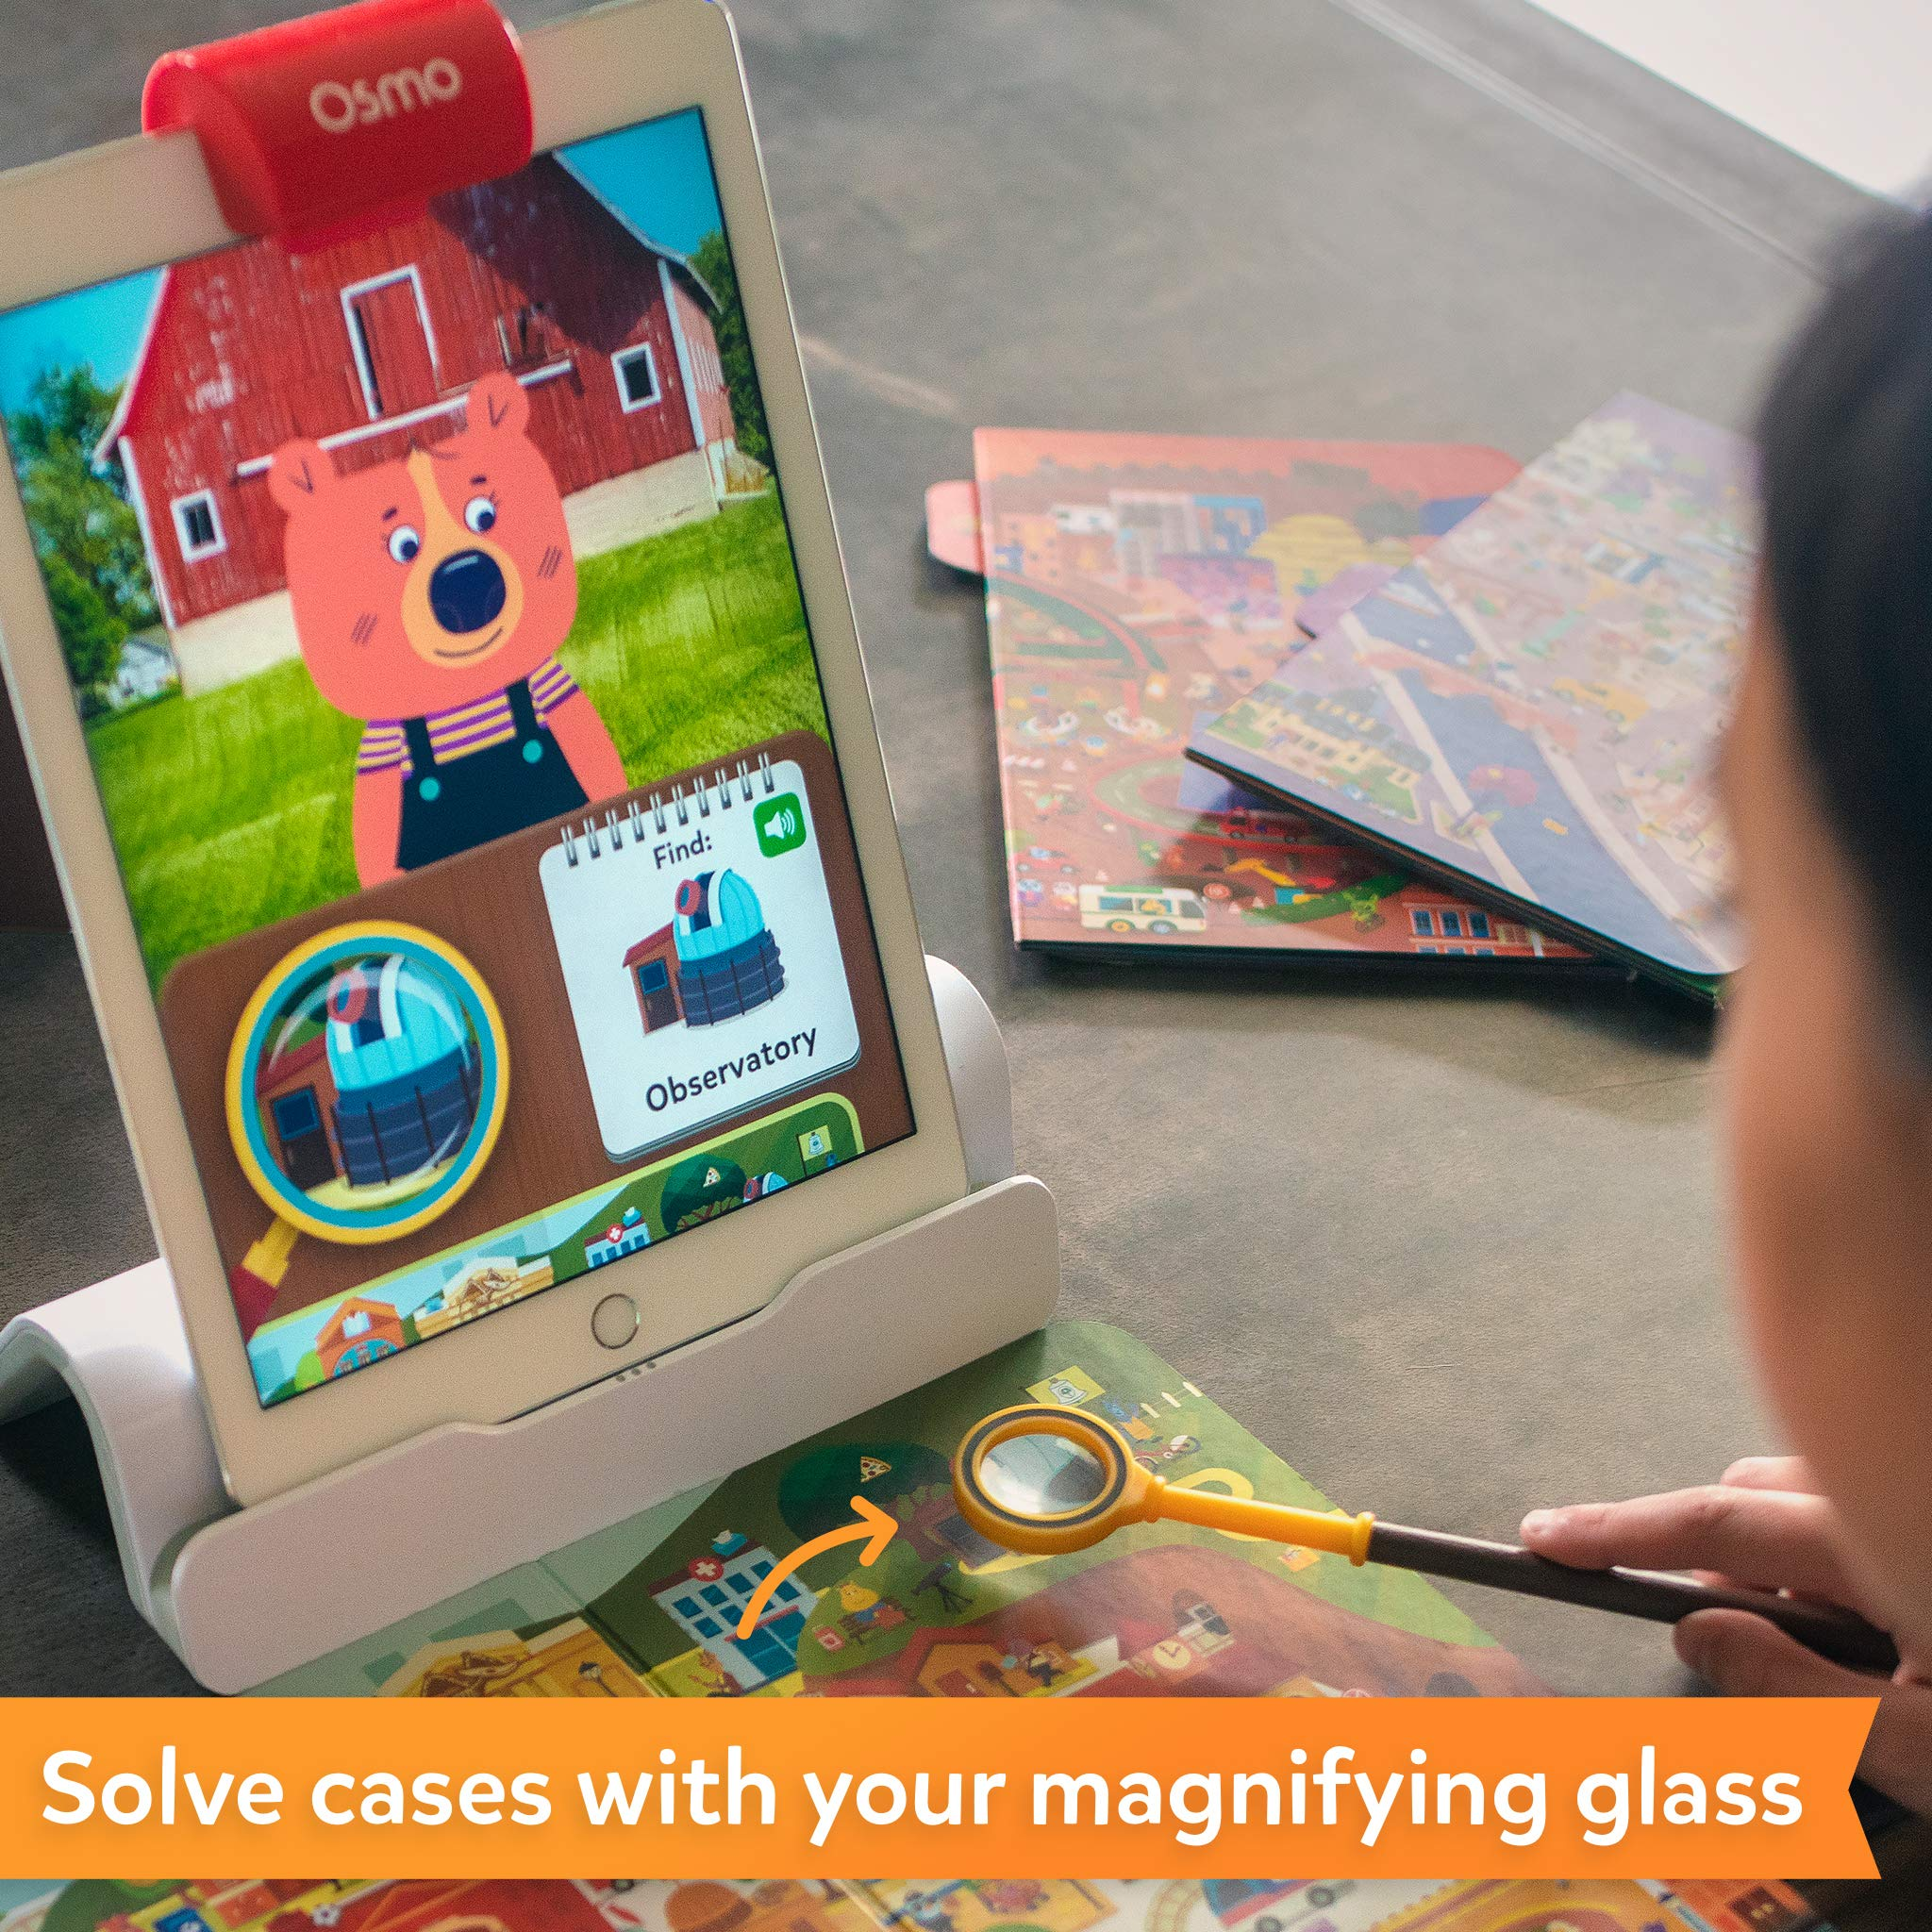 Osmo - Detective Agency: A Search & Find Mystery Game - Ages 5-12 - Explore The World - For iPad and Fire Tablet (Osmo Base Required) by Osmo (Image #4)